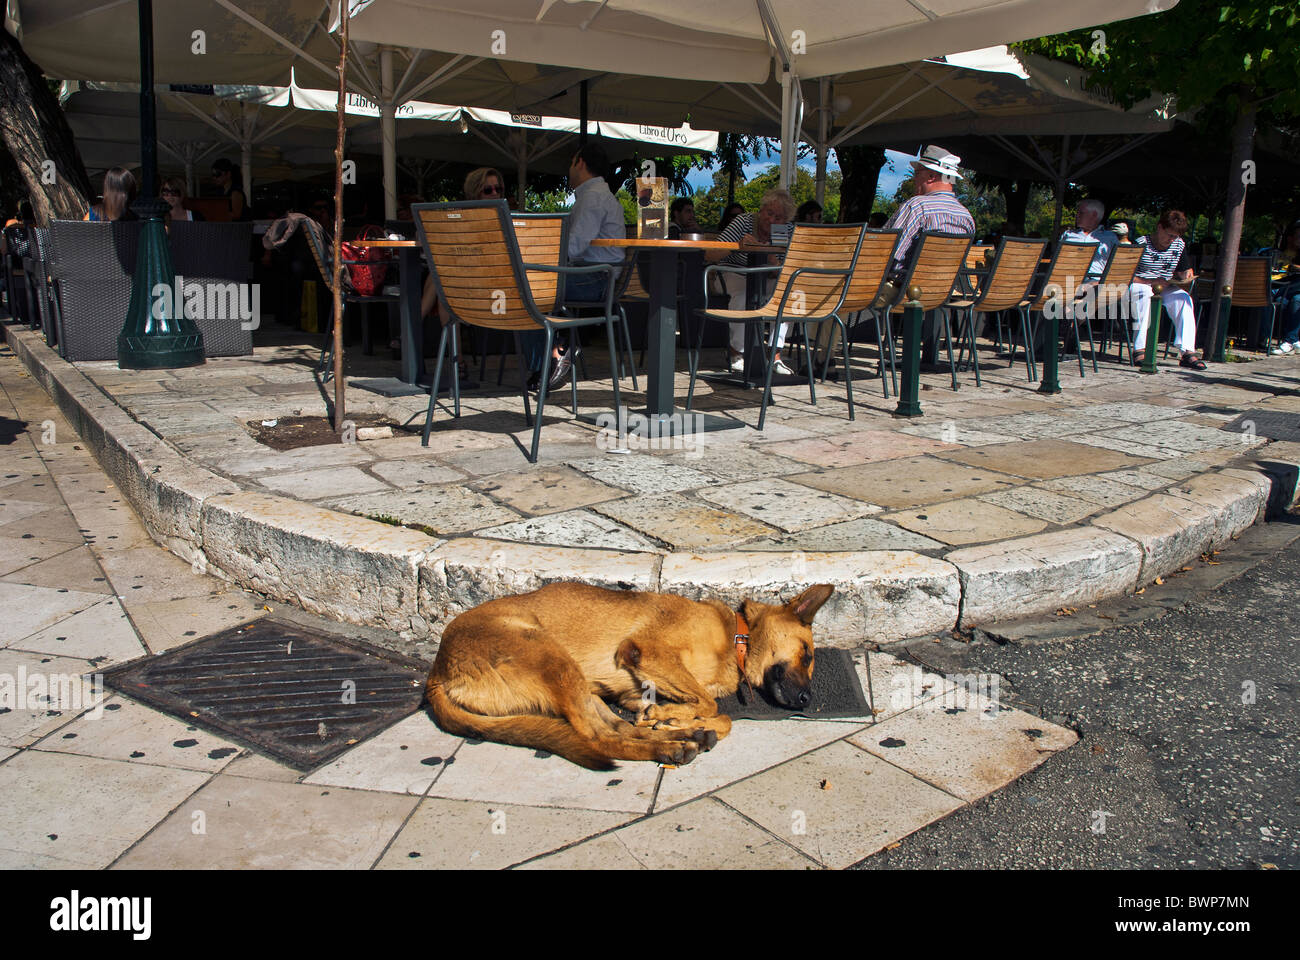 Sleeping Dog in Corfu Town, Ionian Islands Greece. - Stock Image